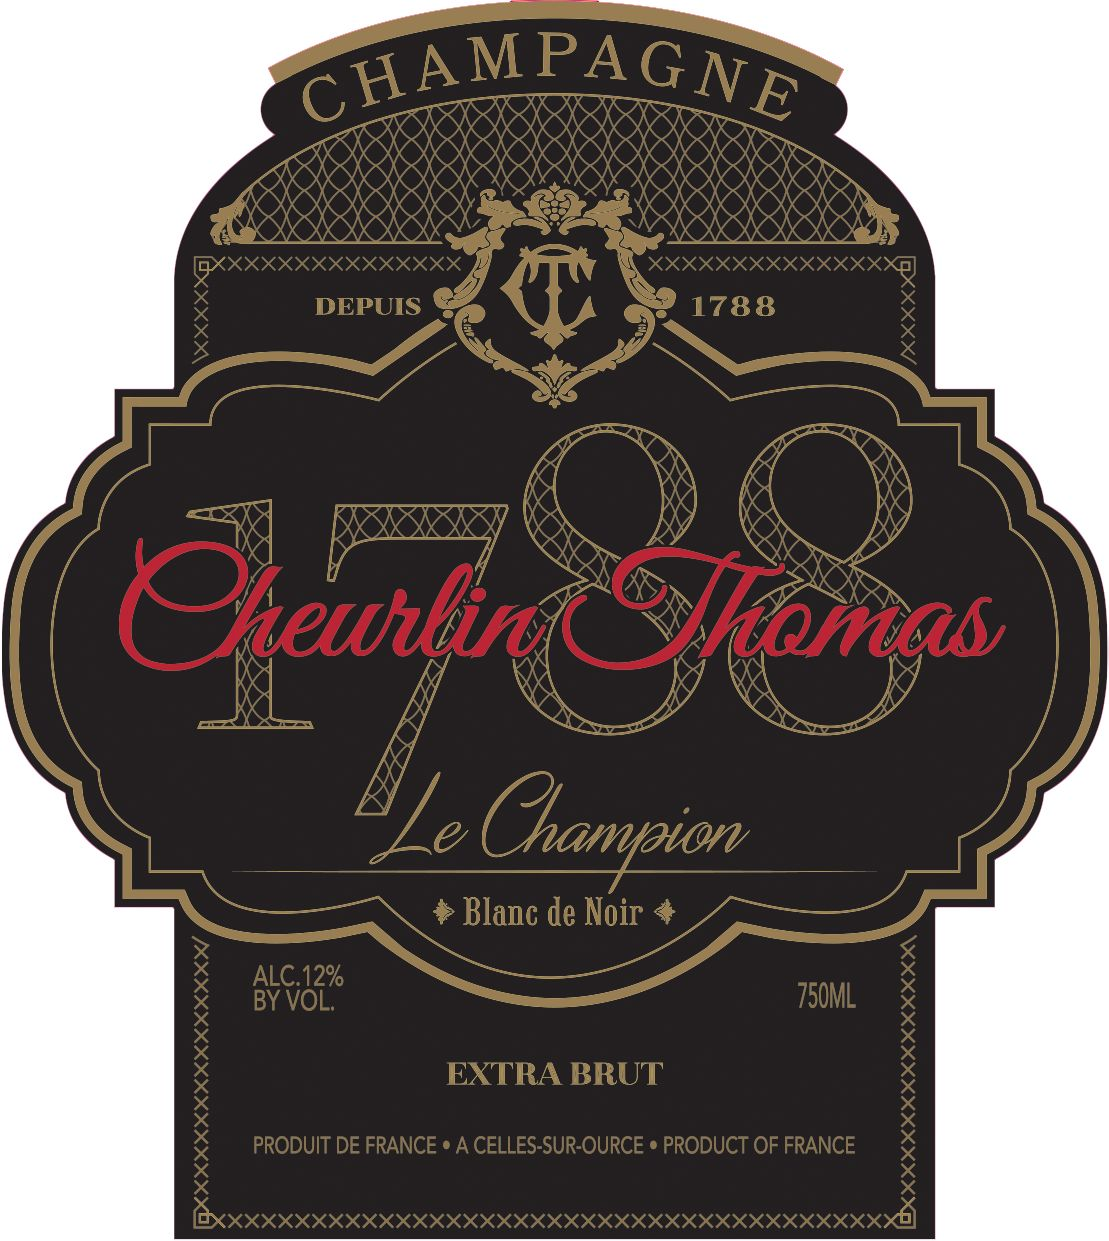 Cheurlin Thomas Le Champion Blanc de Noir Front Label